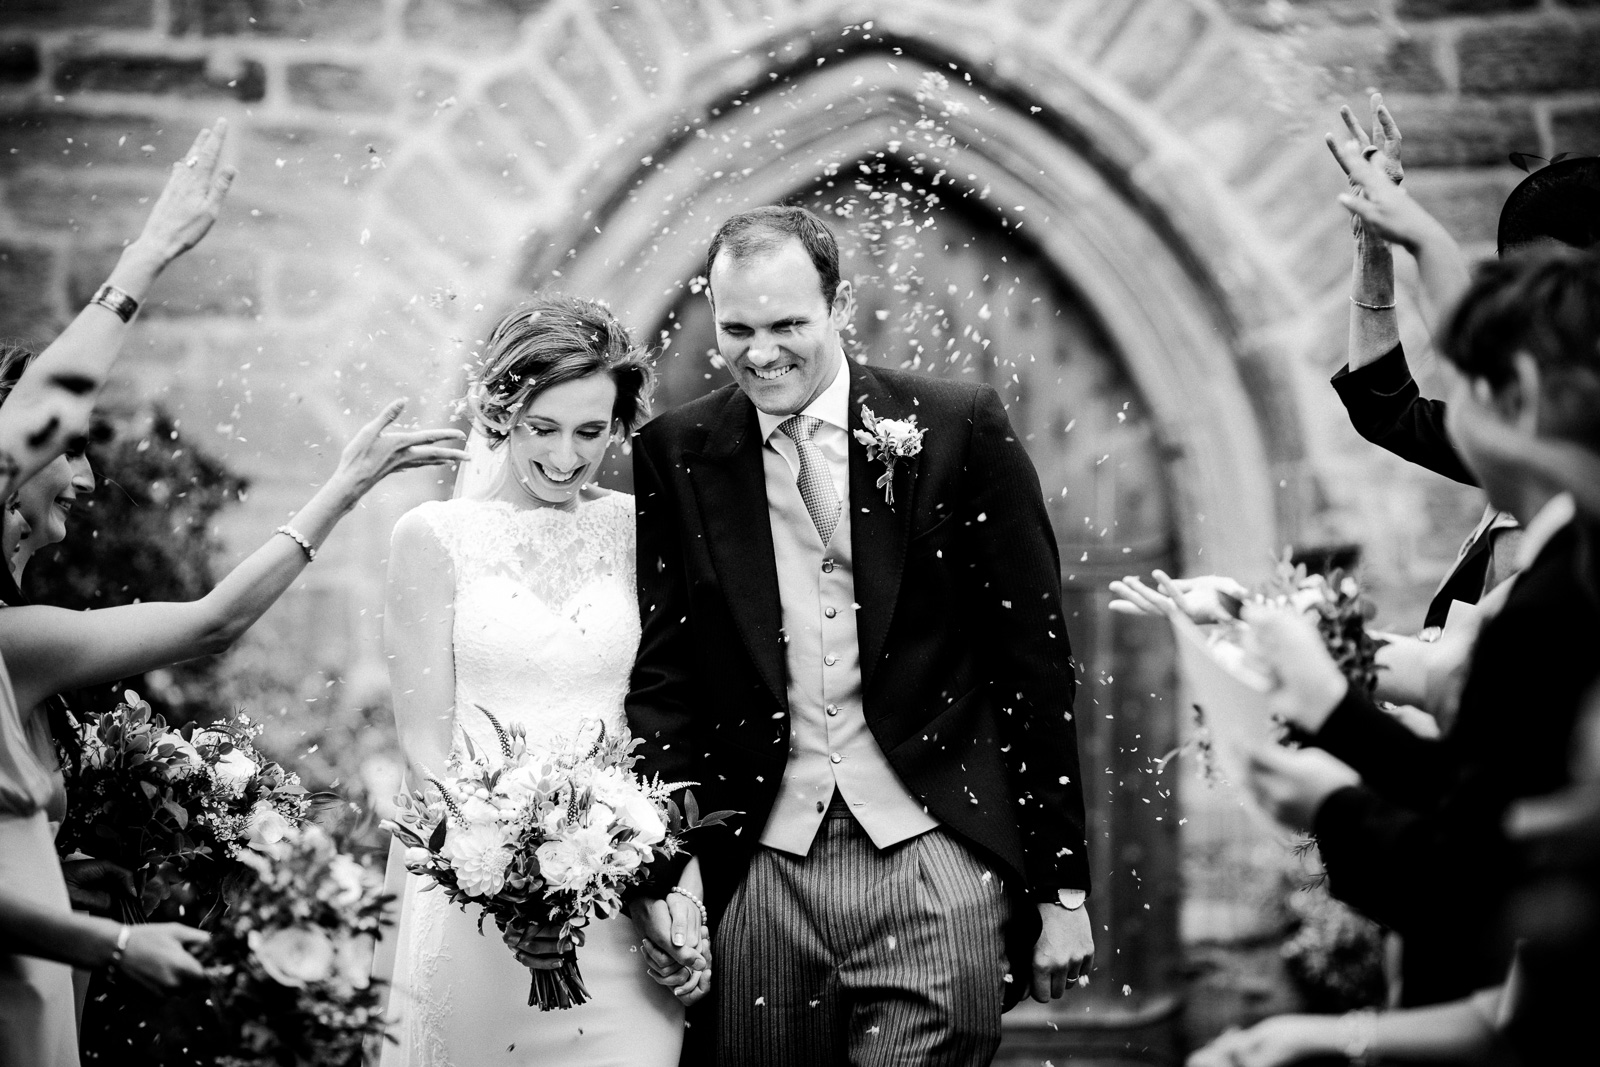 Emily & Ed's PapaKåta Sperry Tent wedding at Buckhurst Park captured by Tony Hart Photography: Confetti throw